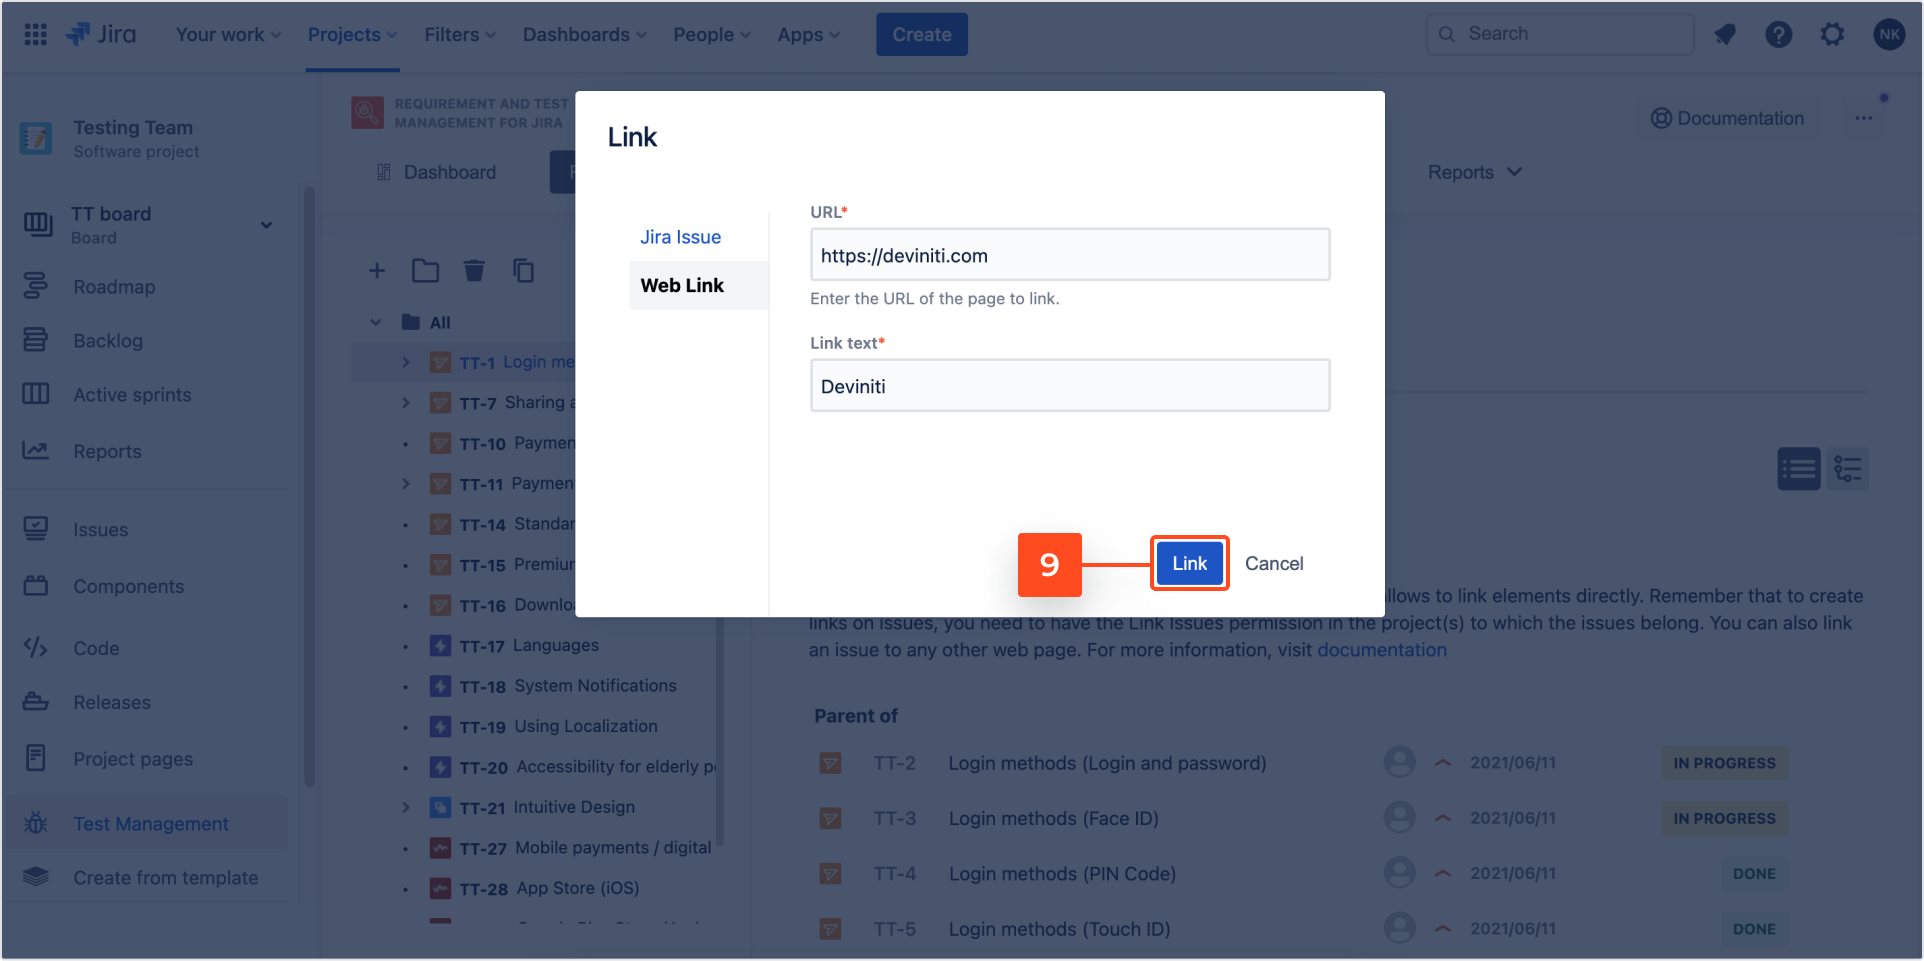 Create link with Requirements and Test Management for Jira app